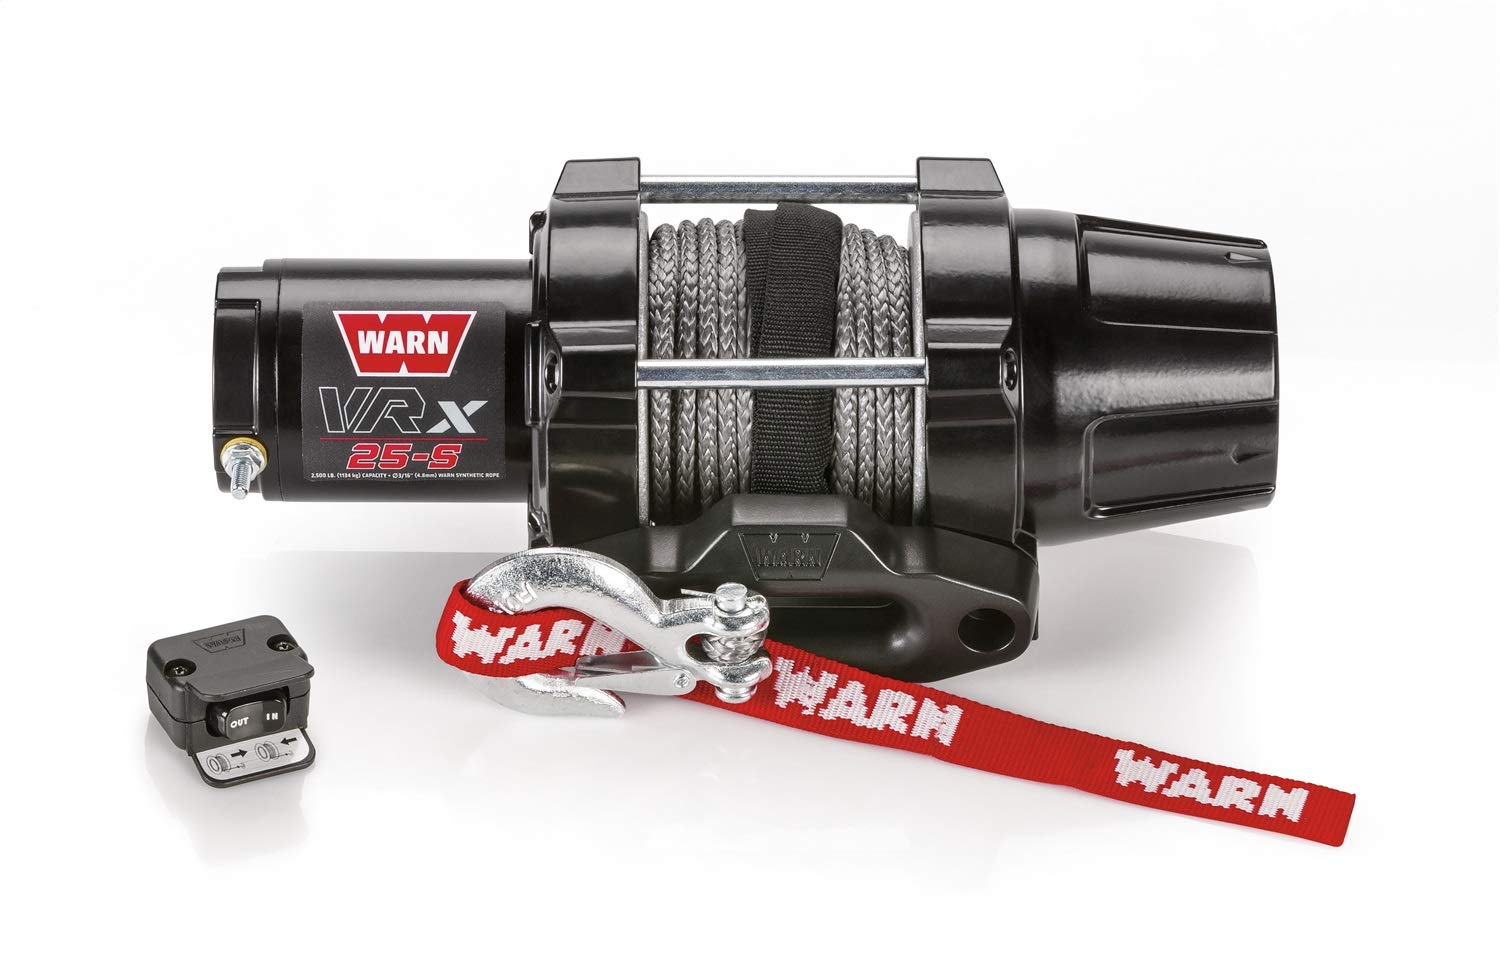 WARN 101020 VRX 25-S Powersports Winch With Synthetic Rope by WARN